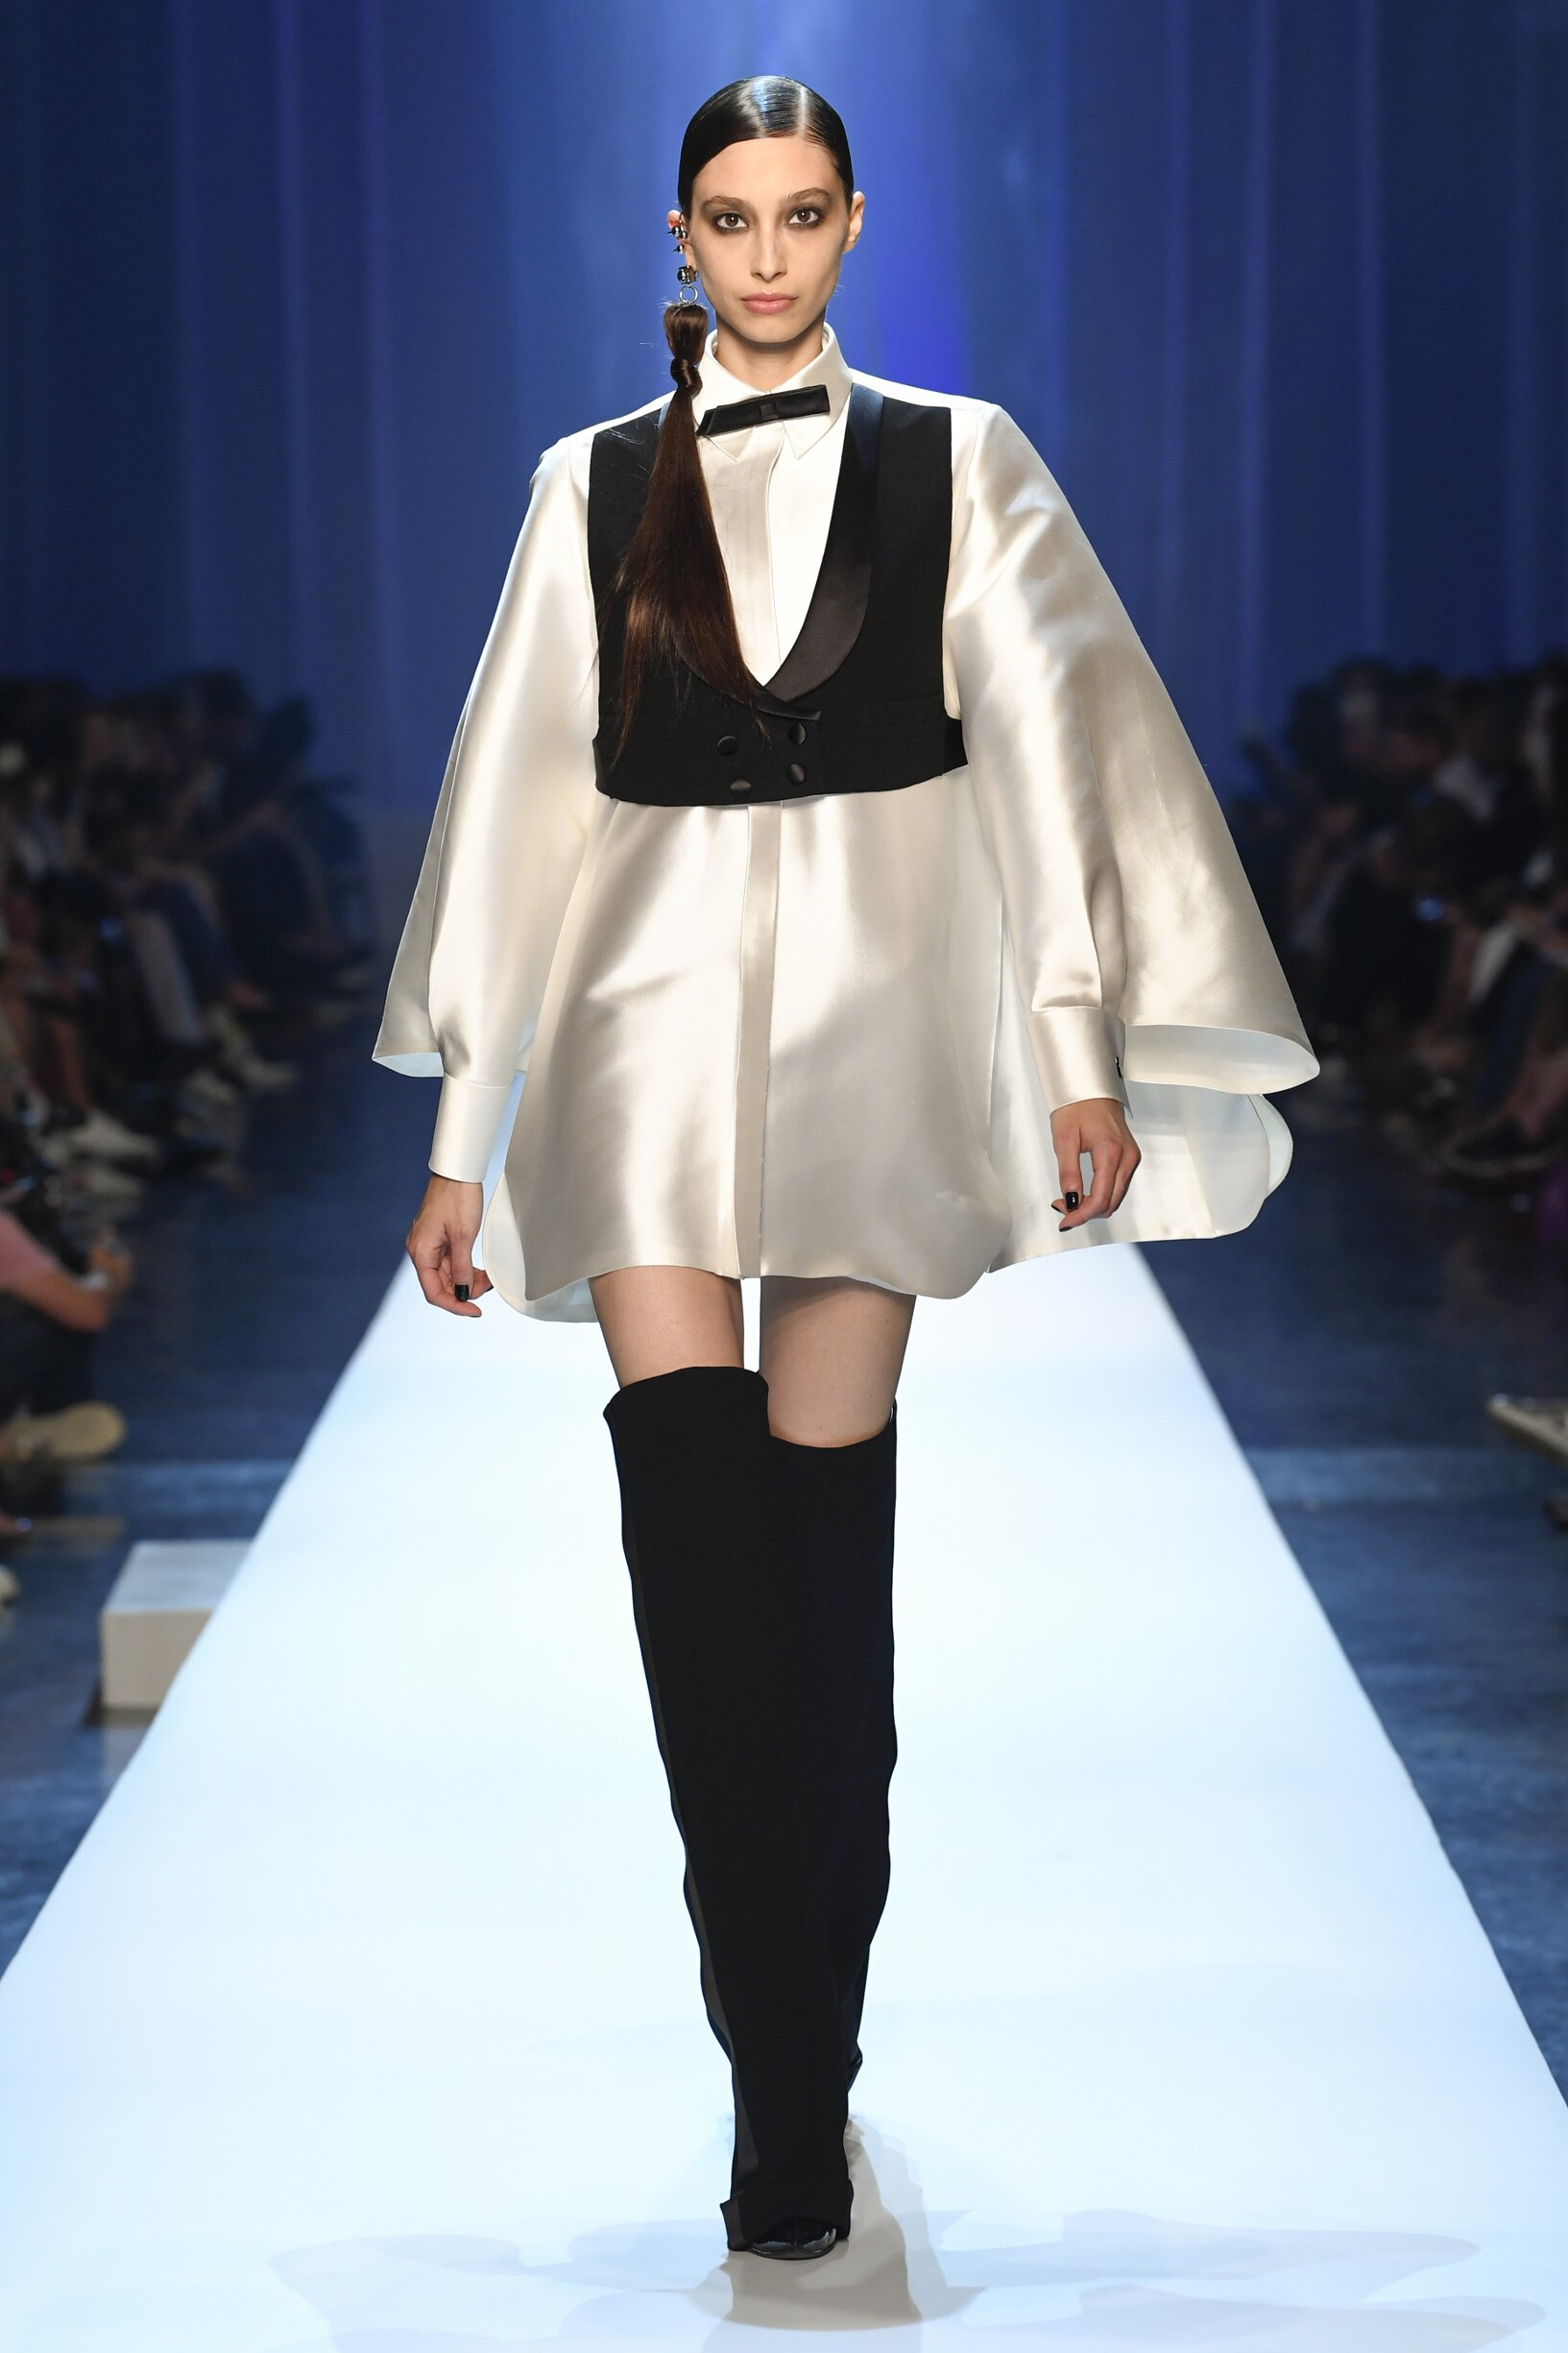 Jean-Paul Gaultier Haute Couture Paris Fashion Week